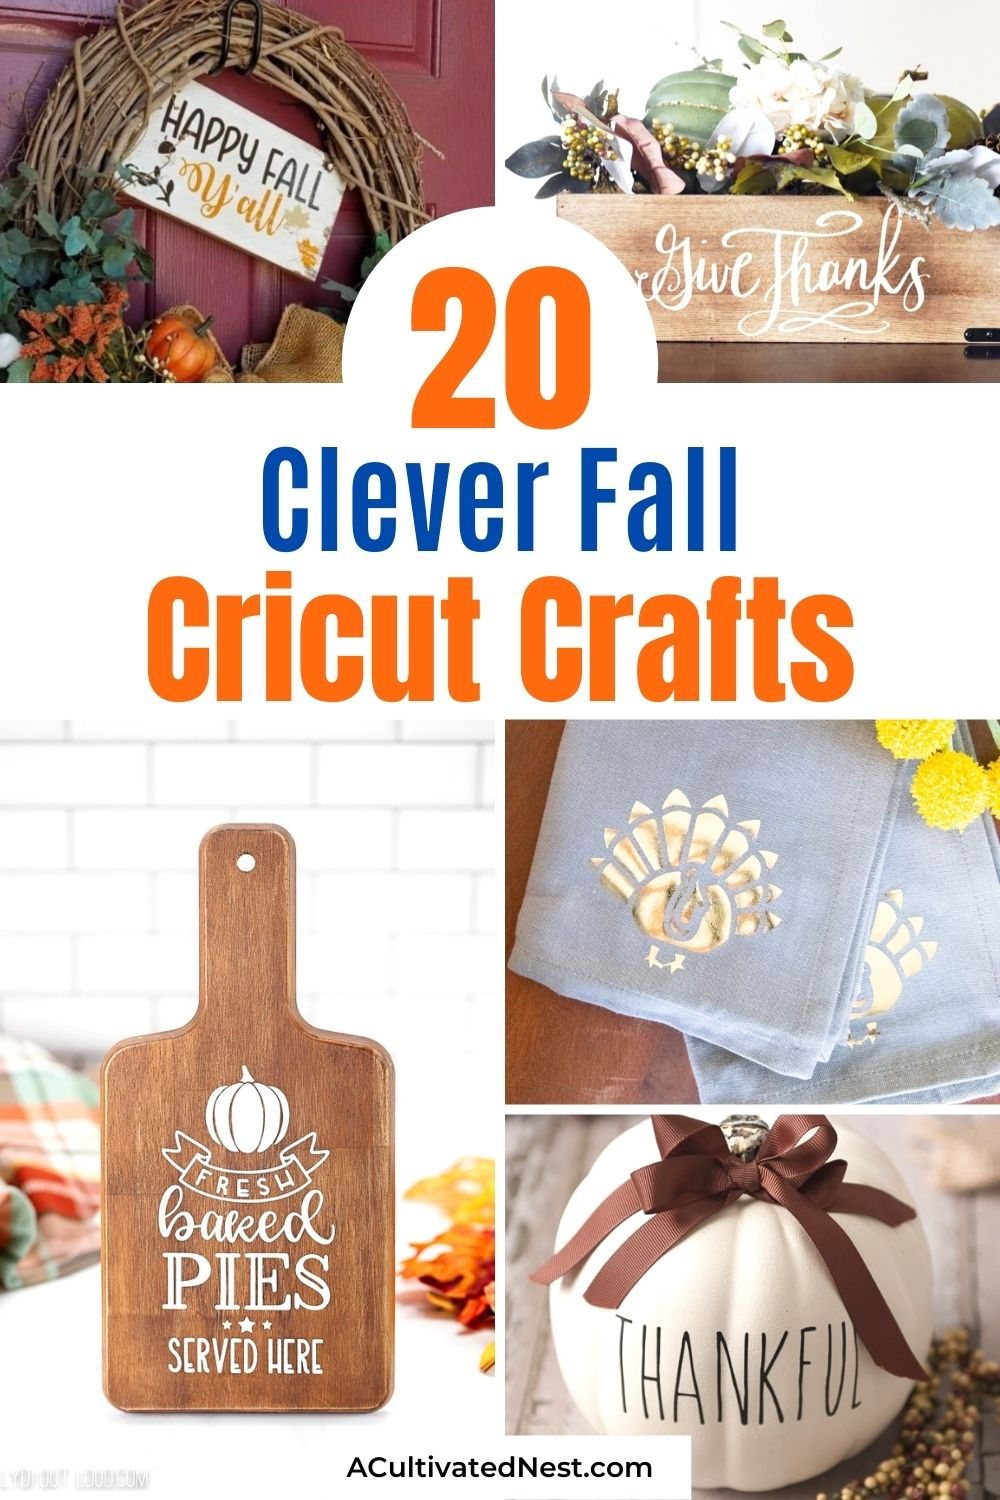 20 Clever Fall Cricut Crafts- For some fun and frugal autumn DIYs, check out these 20 clever fall Cricut crafts! There are so many festive cutting machine crafts you can do for fall! | #crafts #CricutCrafts #cuttingMachine #DIYs #ACultivatedNest